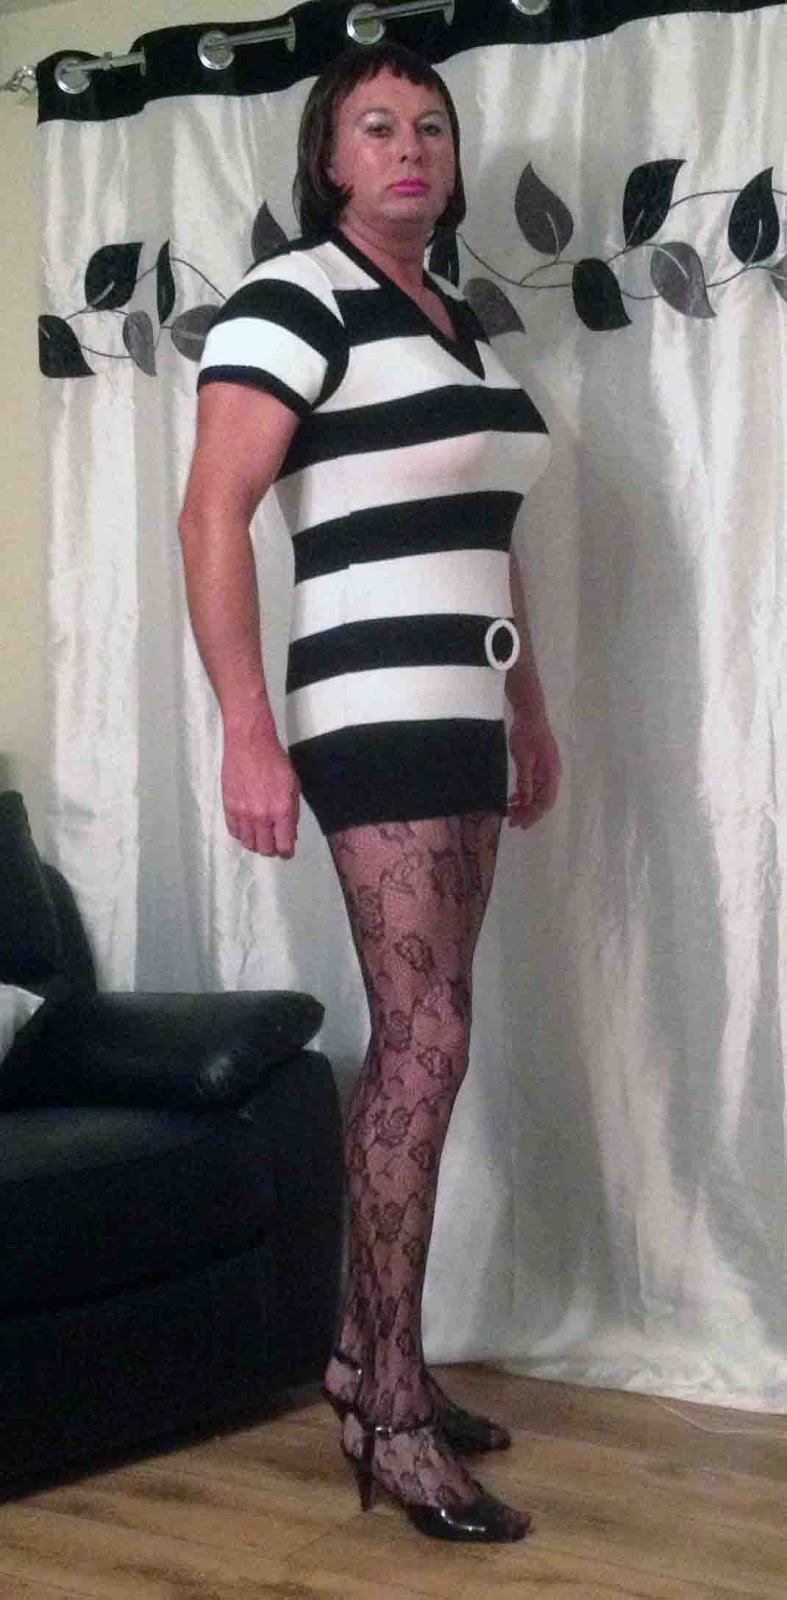 White Sissy Pleases Daily